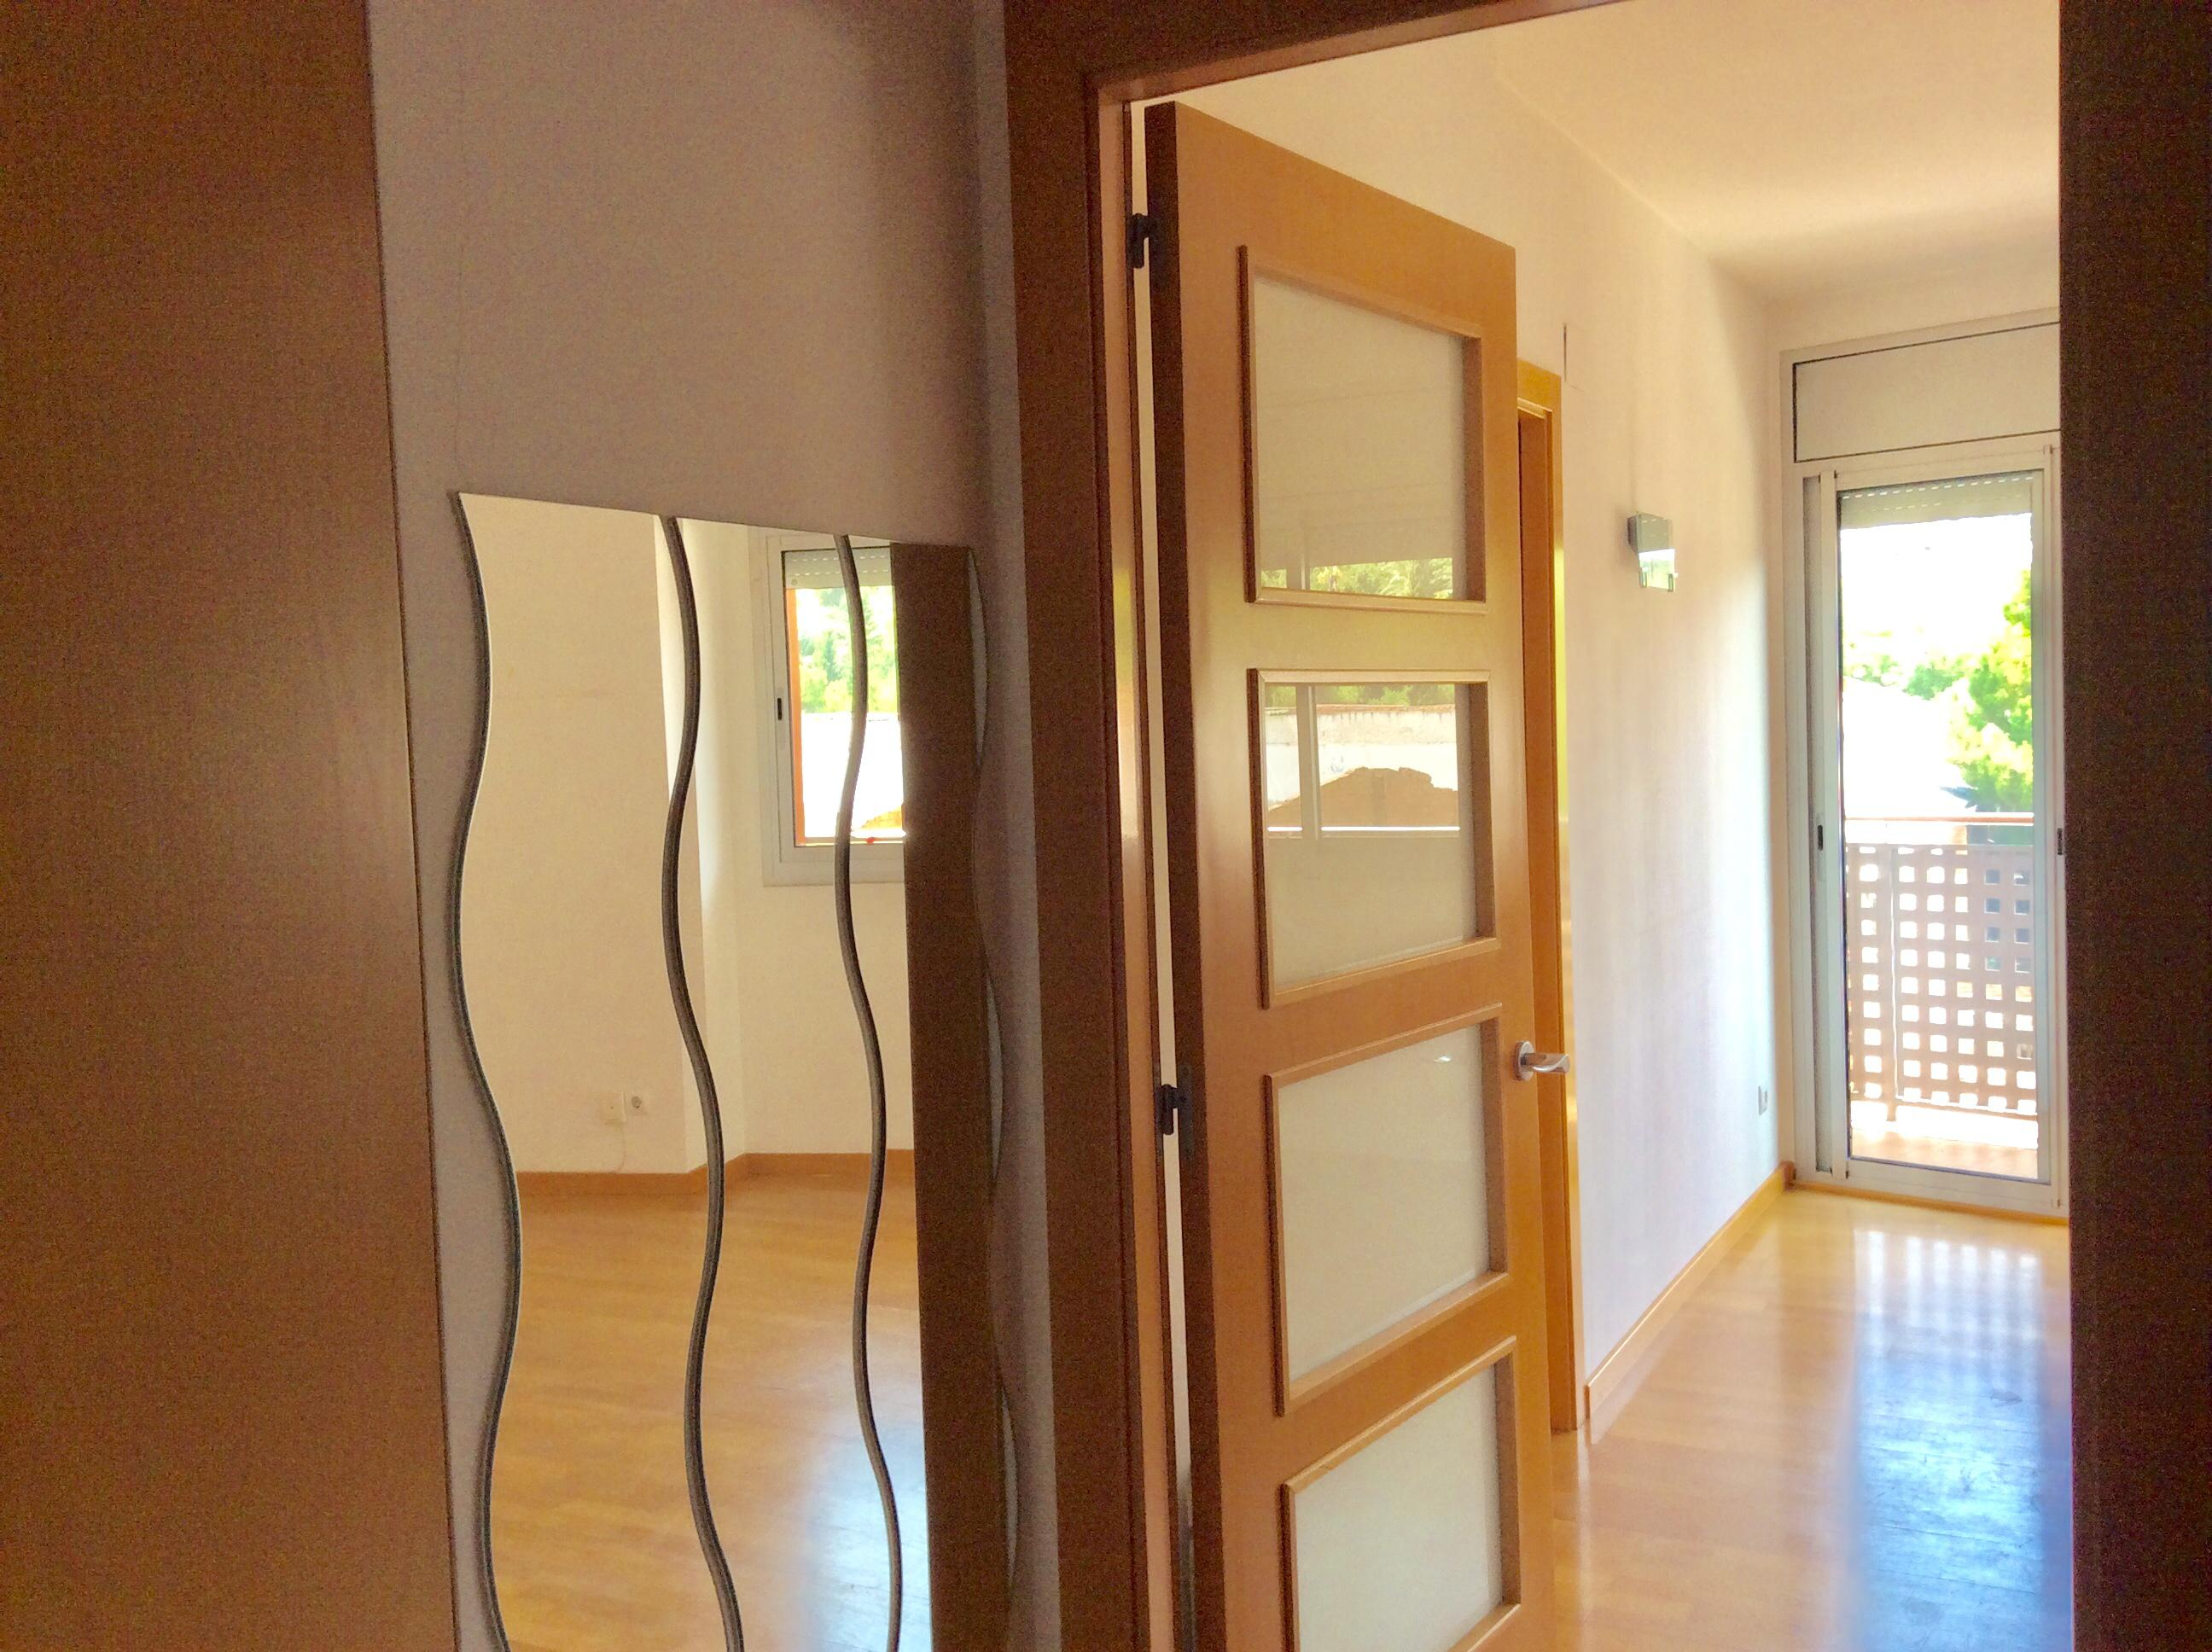 241109 Flat for sale in Sants-Montjuïc, La Marina de Port 6